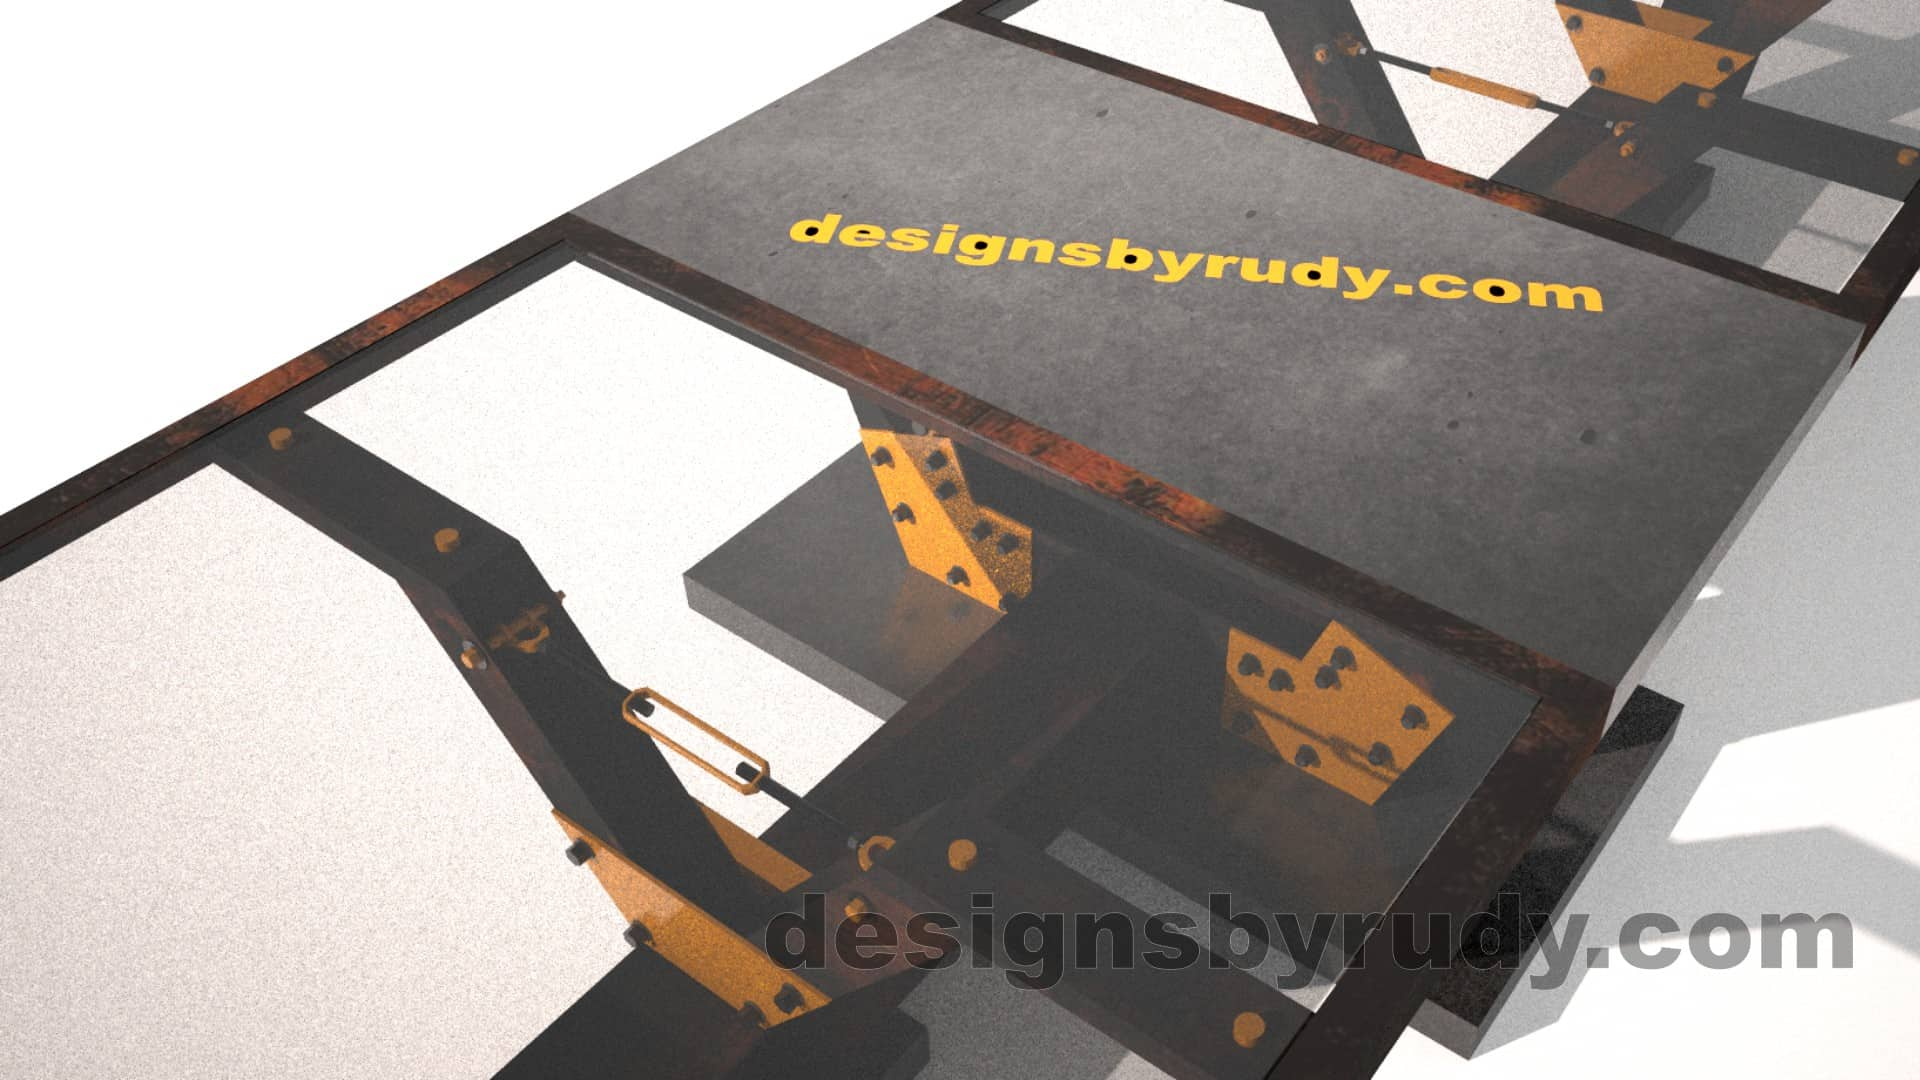 Glass, steel, concrete conference table design by Designs by Rudy 4